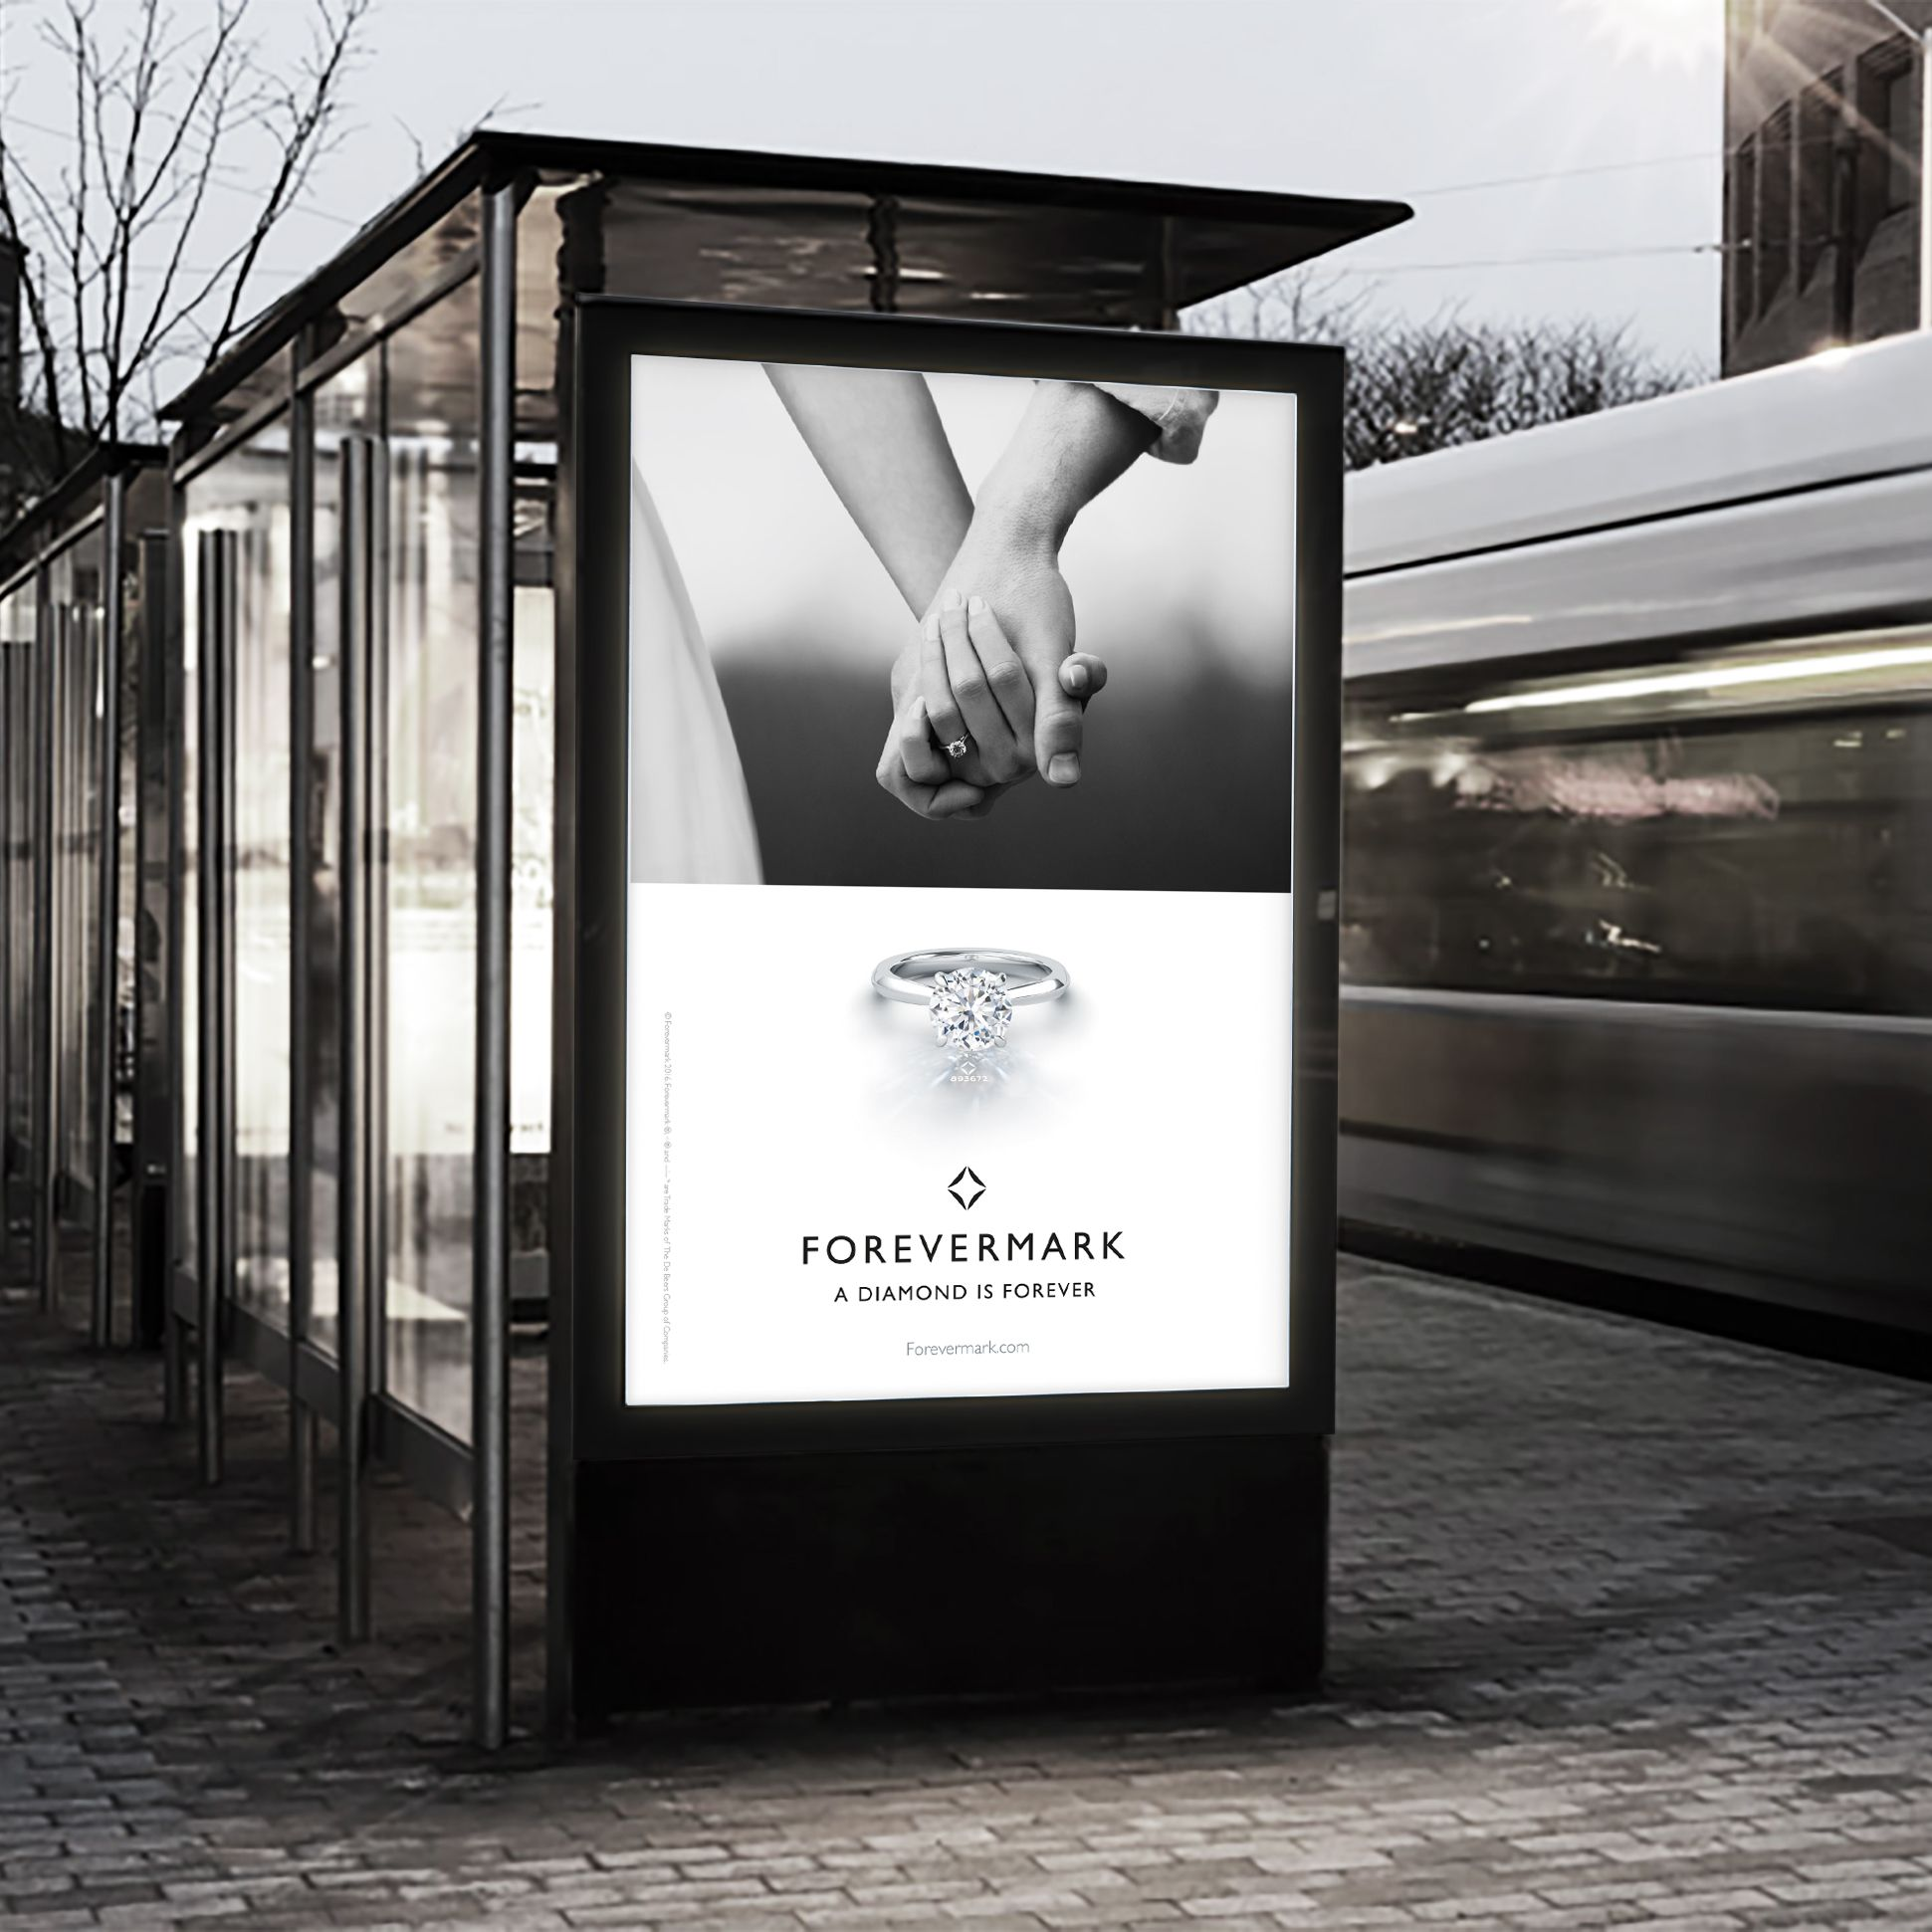 PWW have partnered with Forevermark to help them realise their vision of becoming the world's most premium luxury diamond brand. Working with the internal brand team, the rebrand touched every facet of the business and has injected increased clarity and simplicity across multiple touch points. #Forevermark #diamond #jewellery #luxury #brandidentity